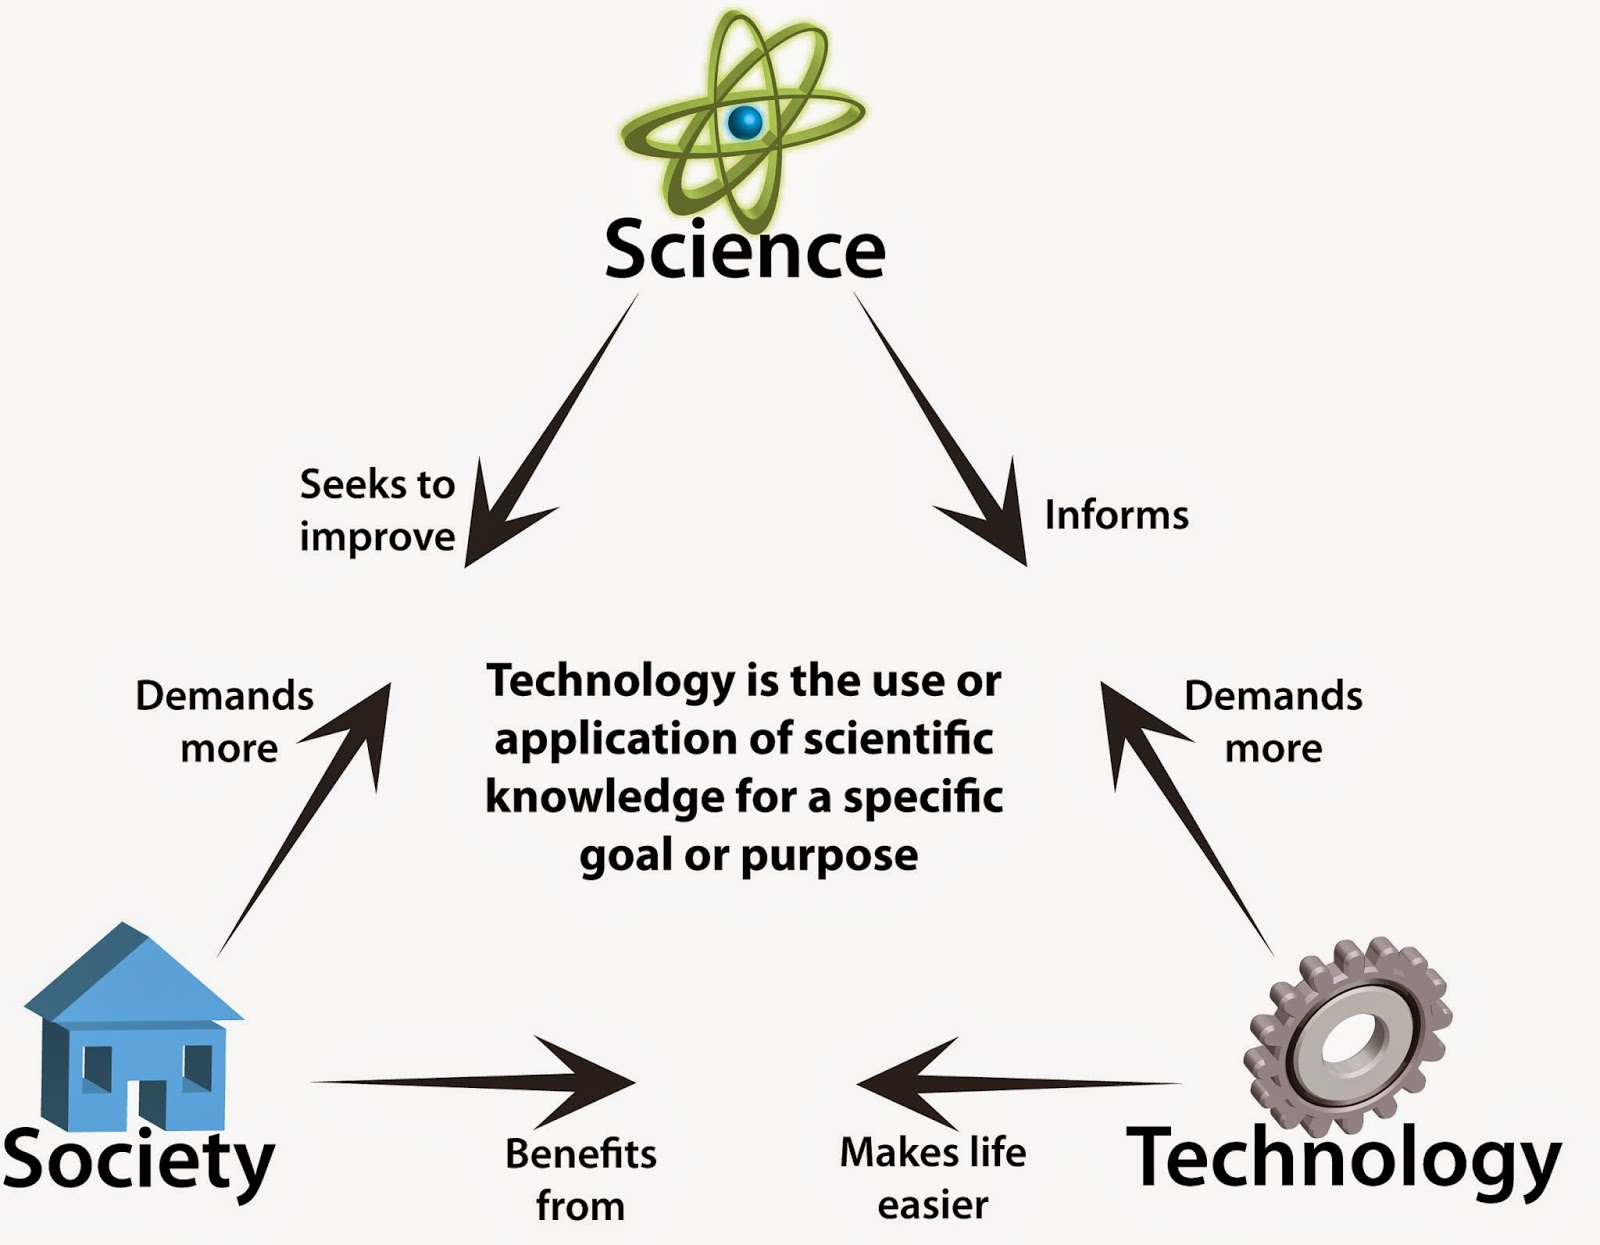 Technology 21st Century: Science, Technology and Society